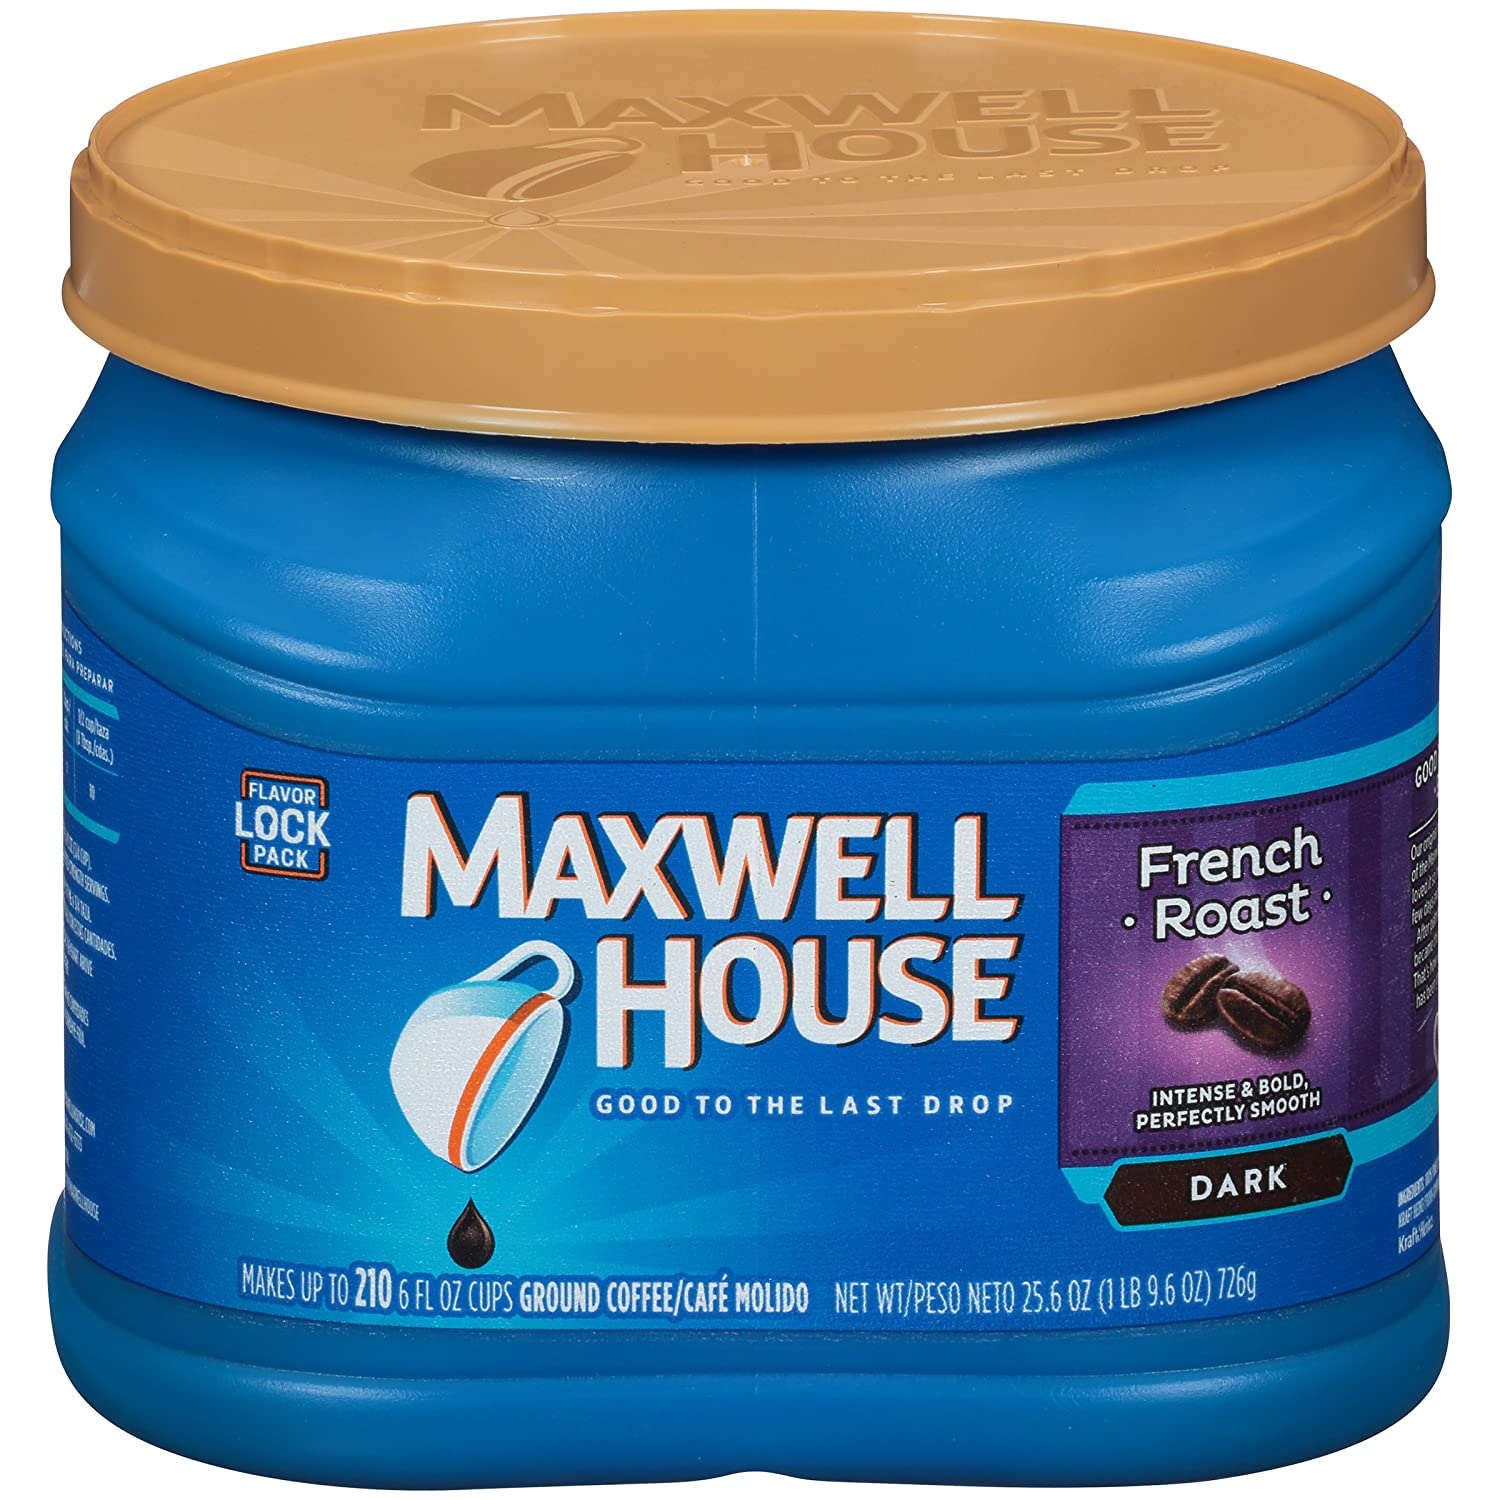 Maxwell House Ground Coffee, French Roast, 25.6 Ounce Kraft Foods 00043000070345